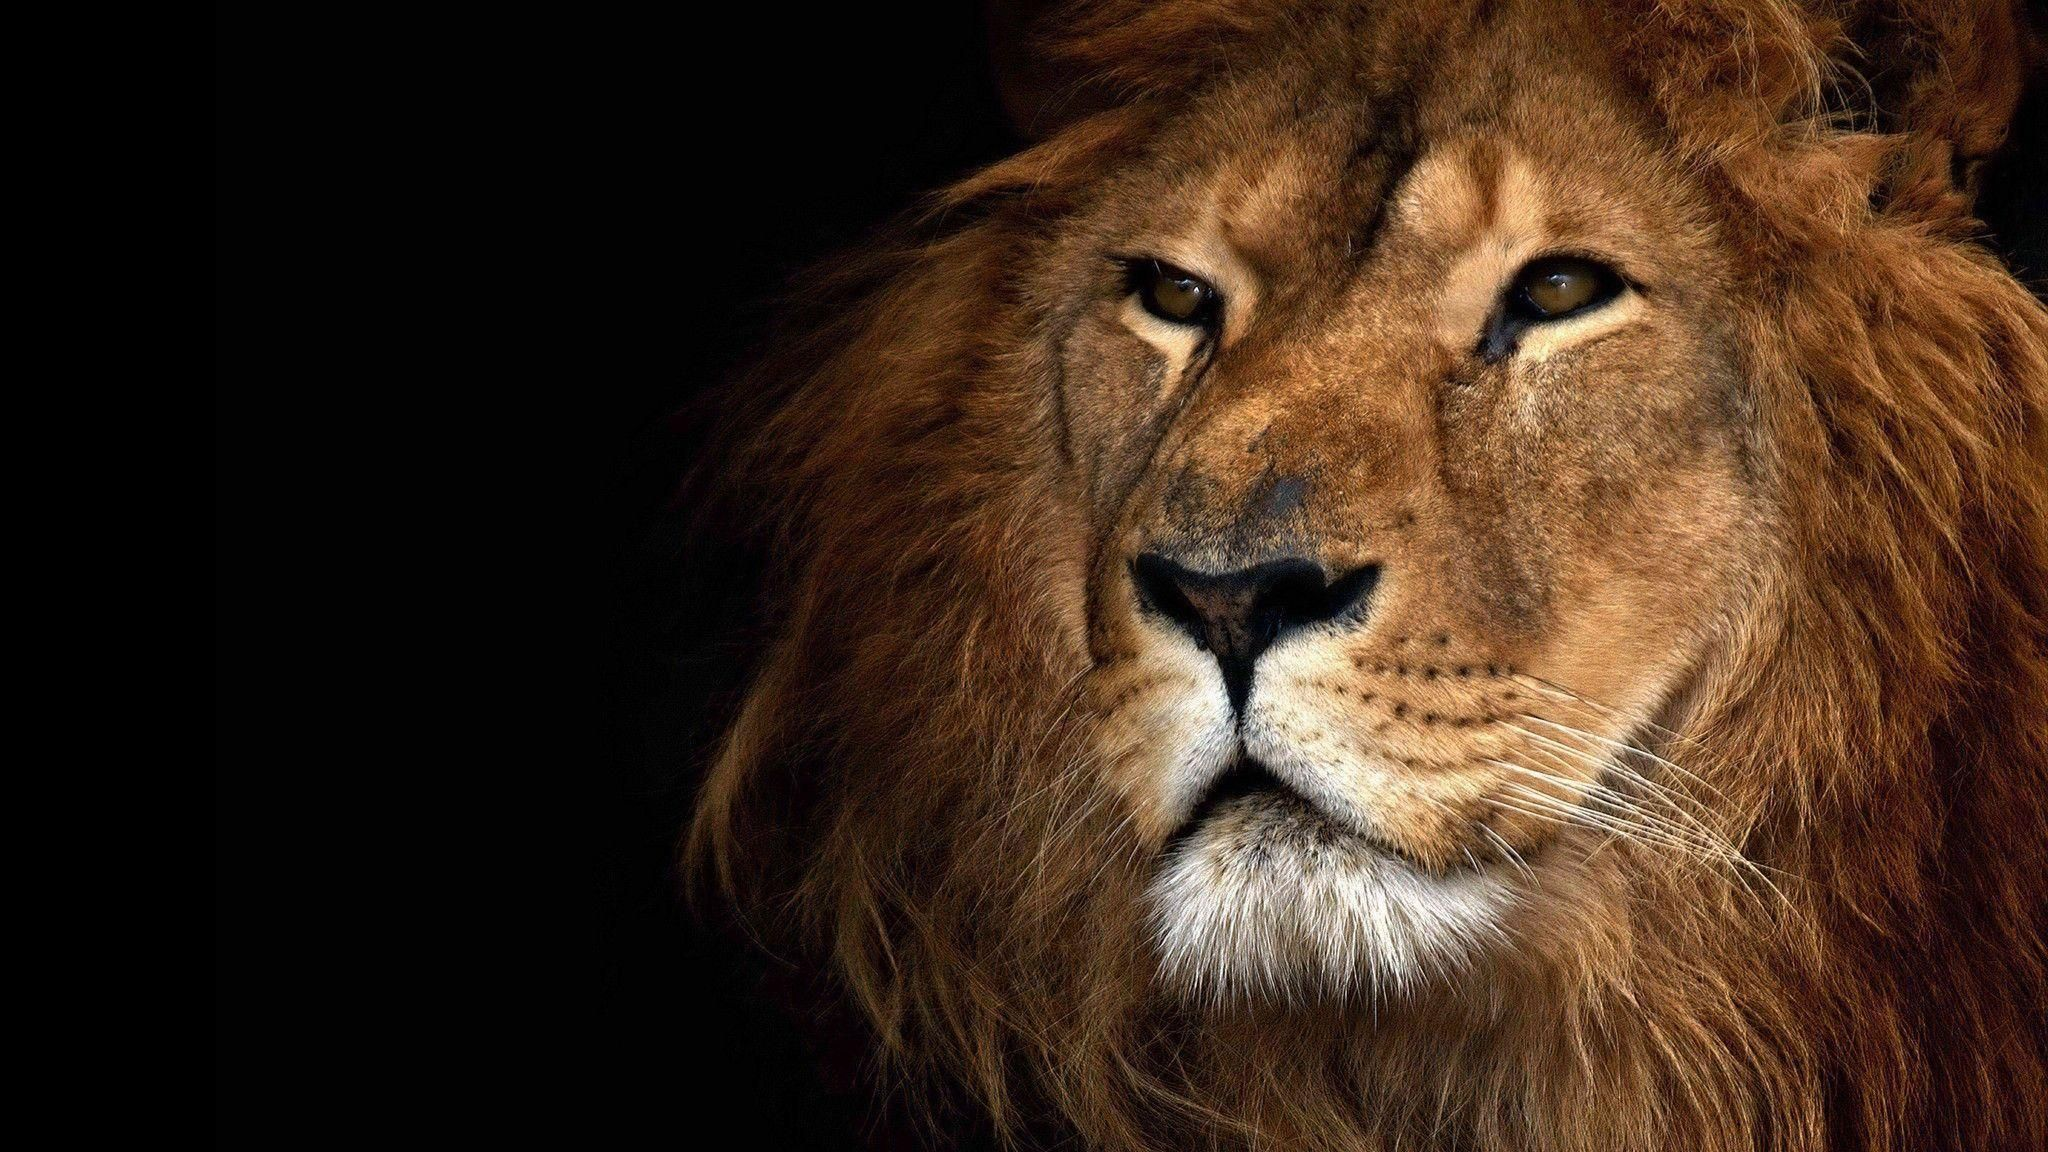 pinkhalilahmadkhan on lion hd wallpapers and backgrounds (32